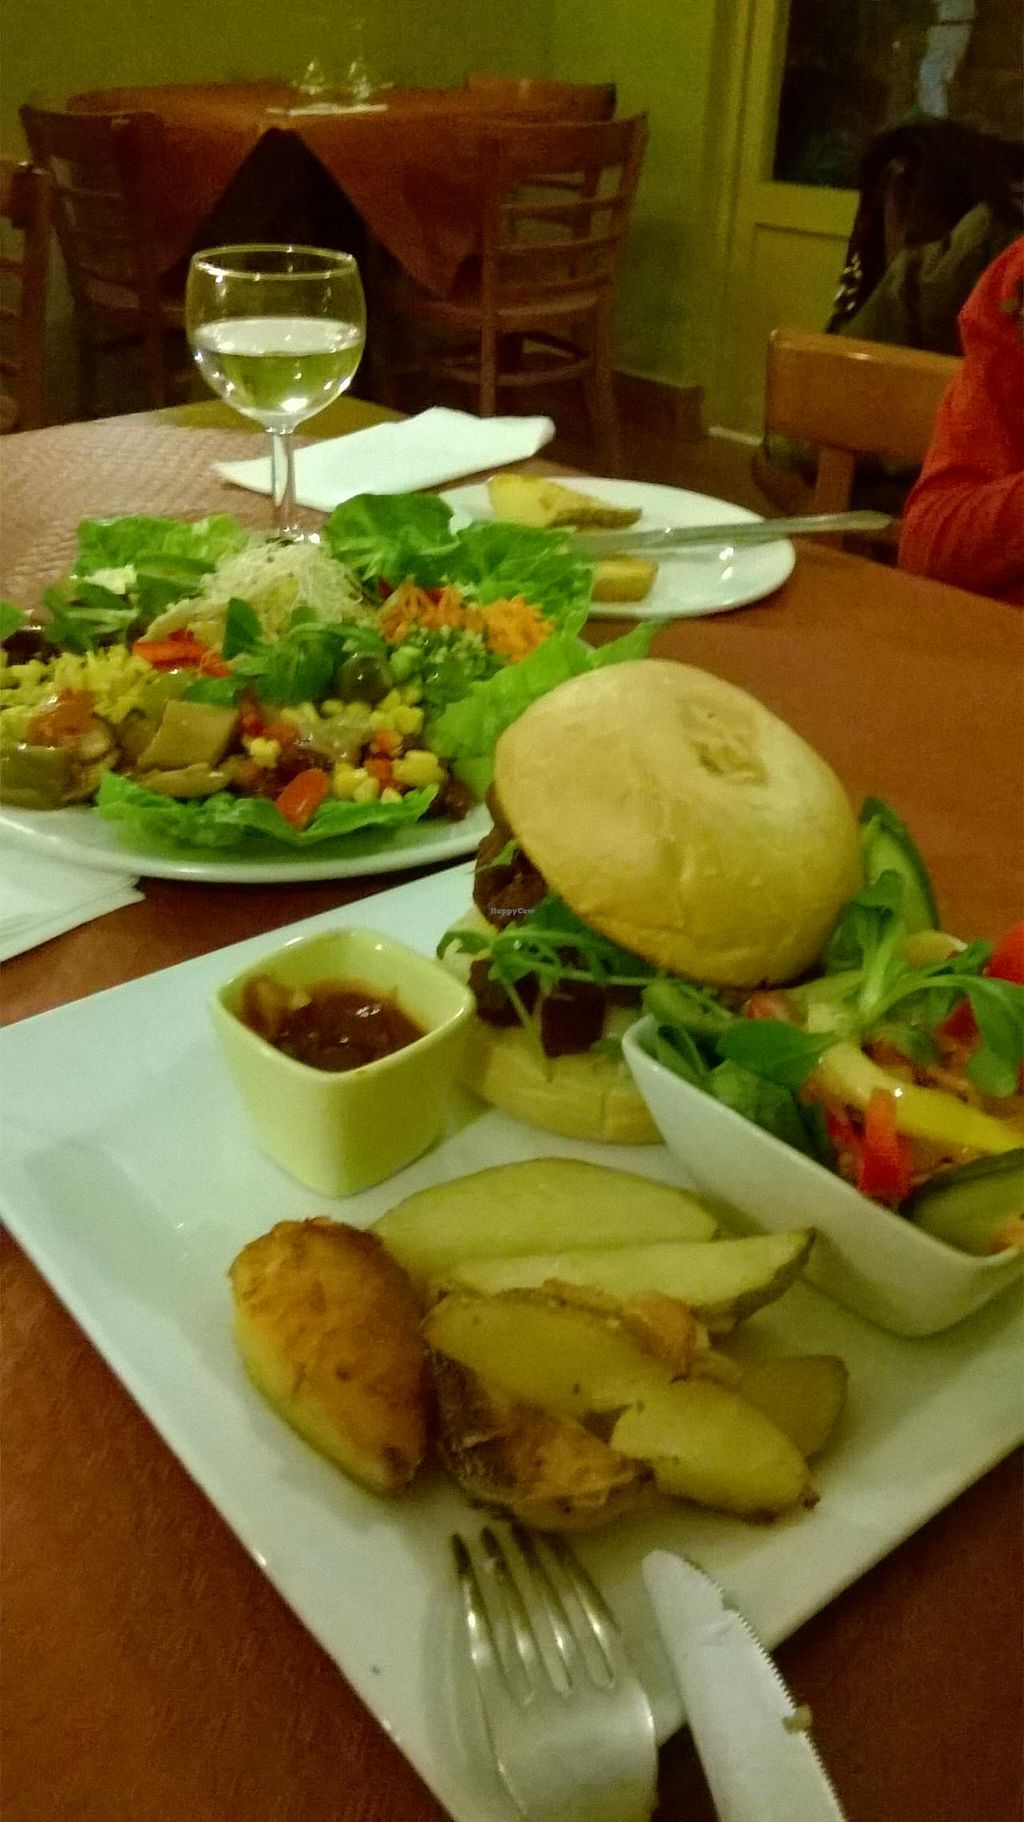 "Photo of Beet Vegetariano  by <a href=""/members/profile/thecatinthetree"">thecatinthetree</a> <br/>Waikiki burger & Salad Platter <br/> December 12, 2014  - <a href='/contact/abuse/image/1102/87815'>Report</a>"